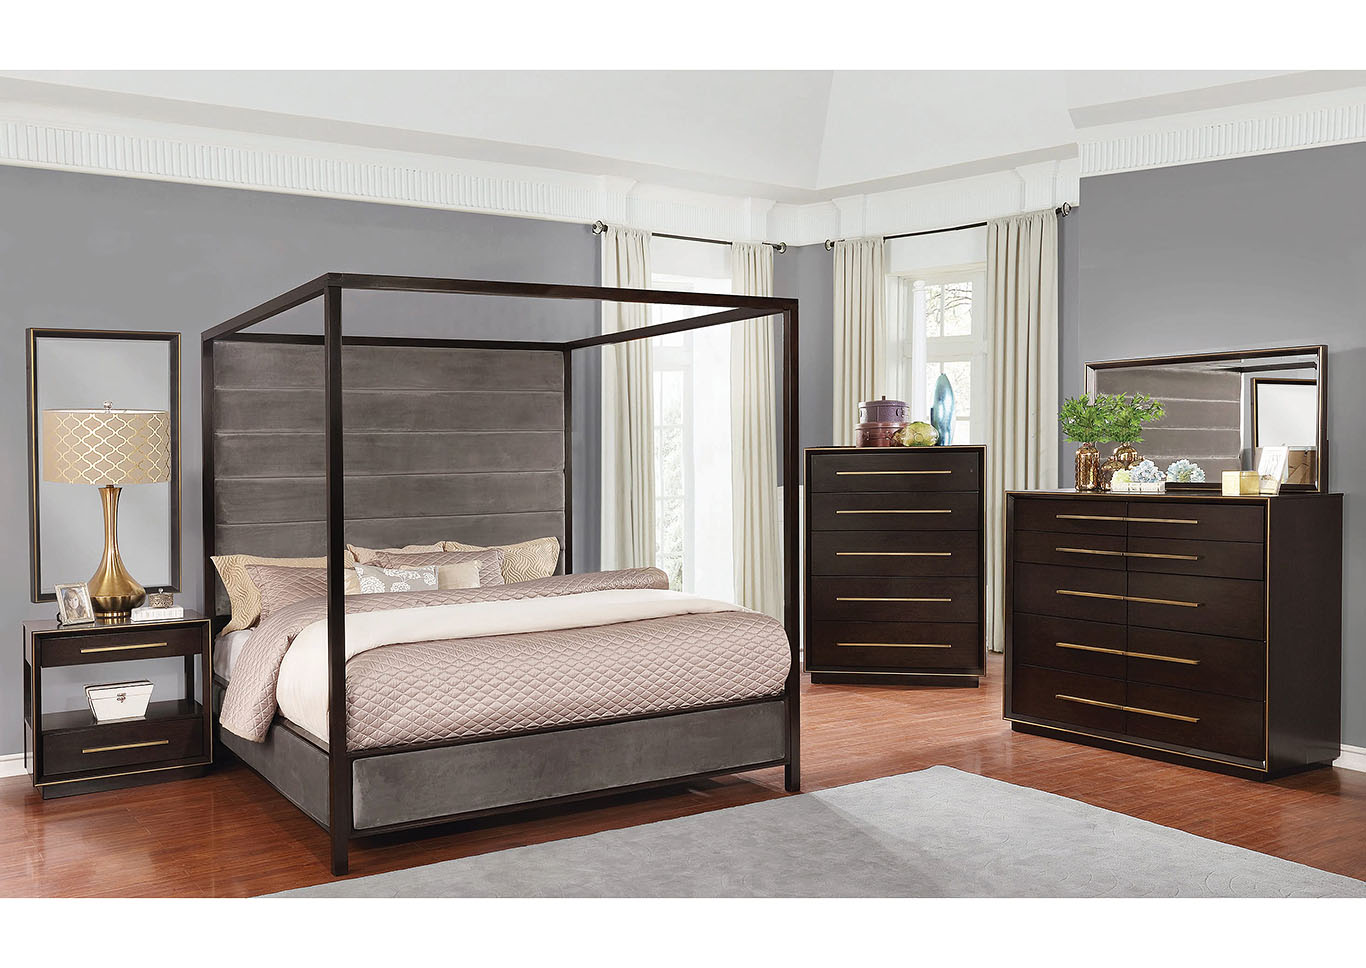 Smoked Peppercorn Eastern King Canopy Bed,Coaster Furniture